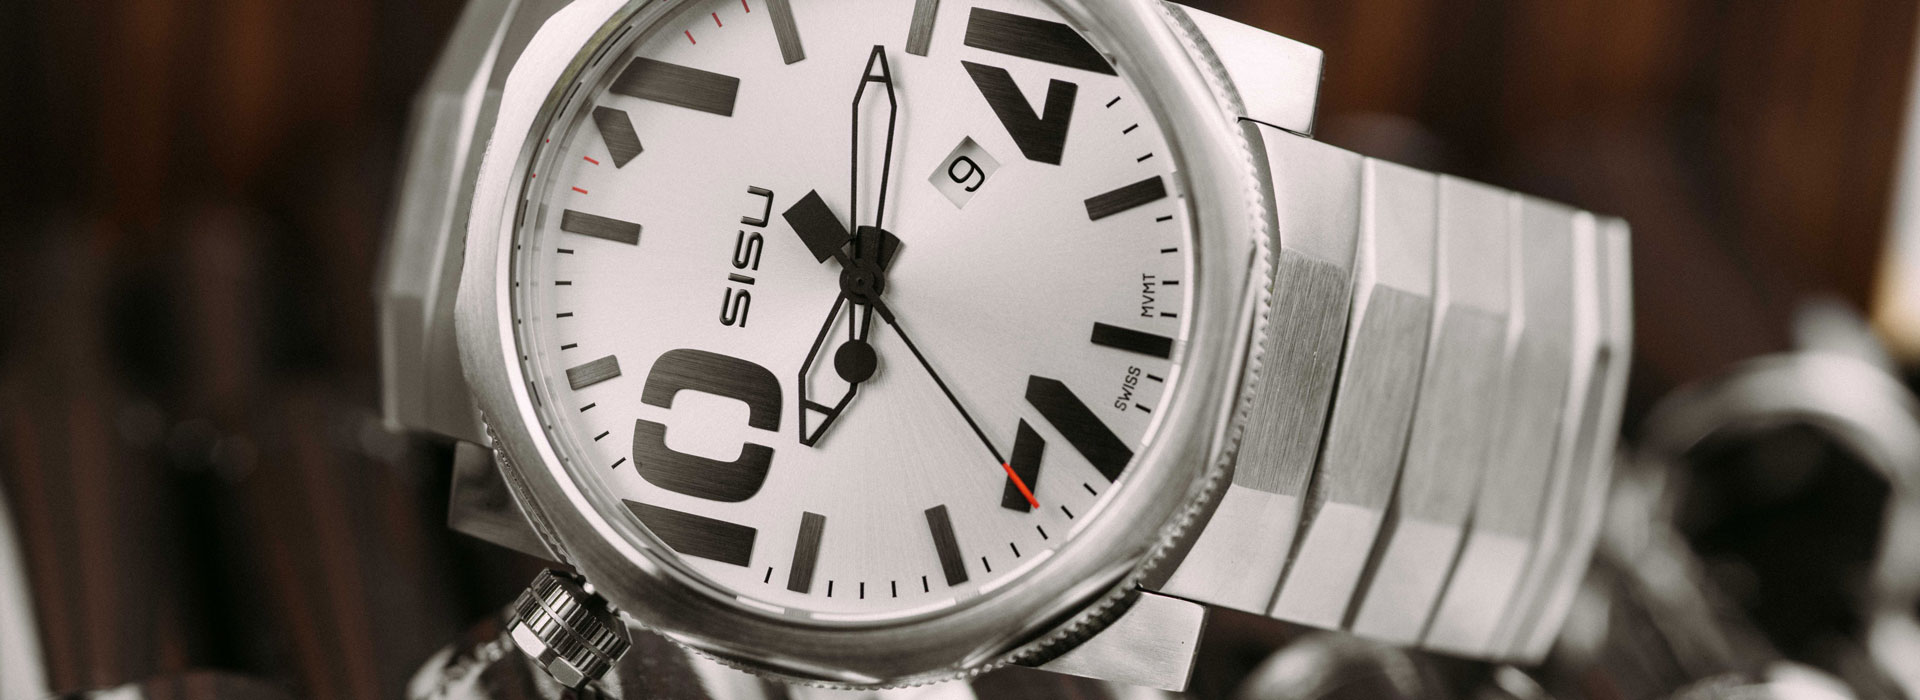 sisu watches 50% off